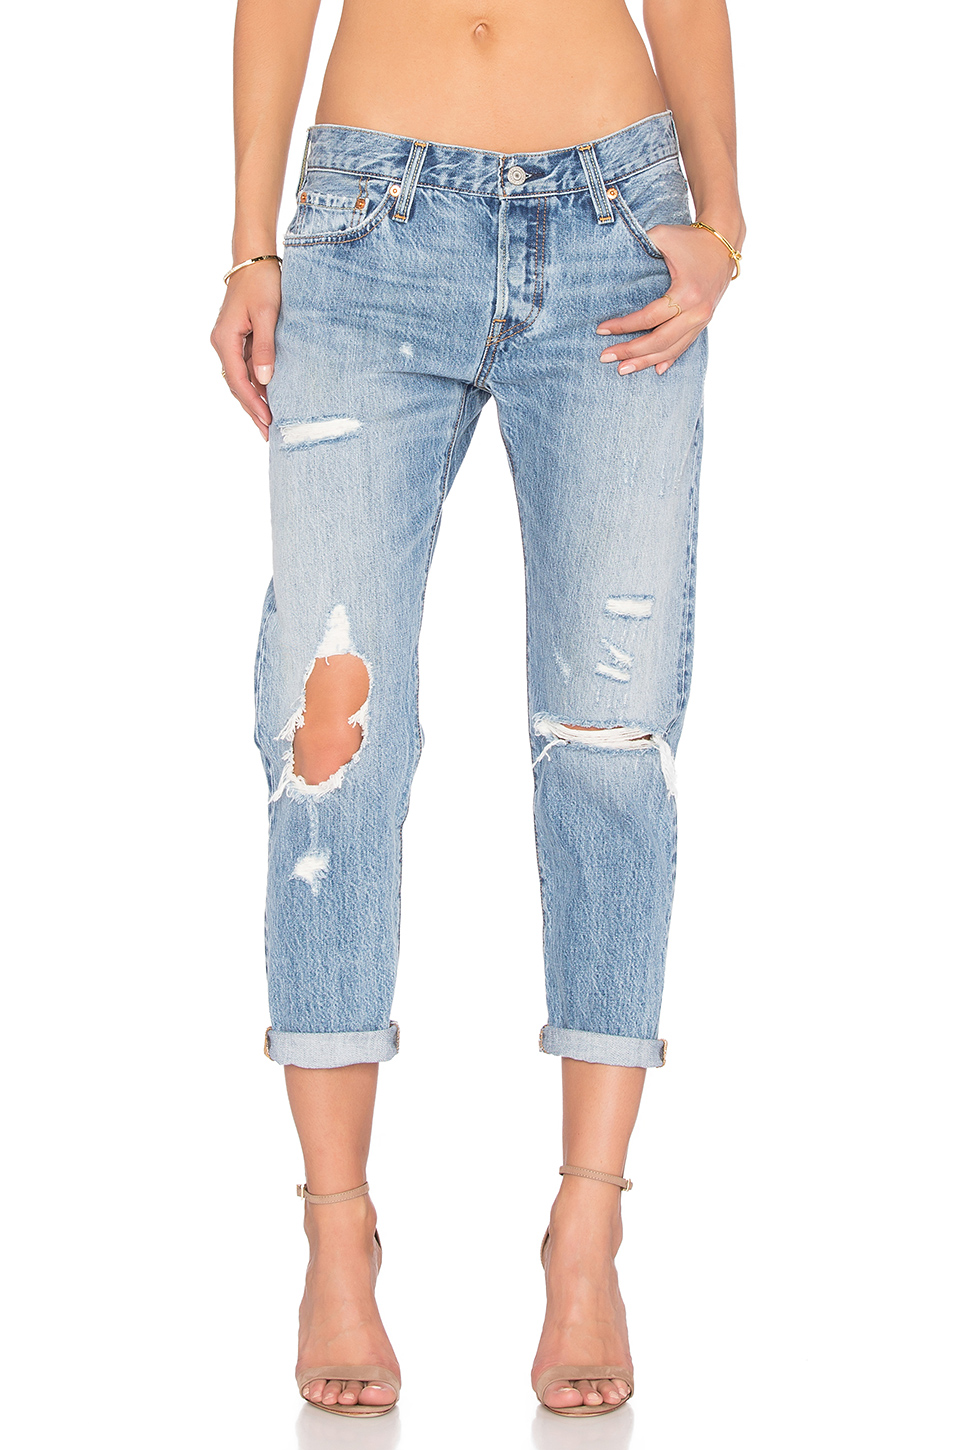 19a36f21 Levi's 501 Skinny Jeans In Old Hangouts In Time Gone By | ModeSens